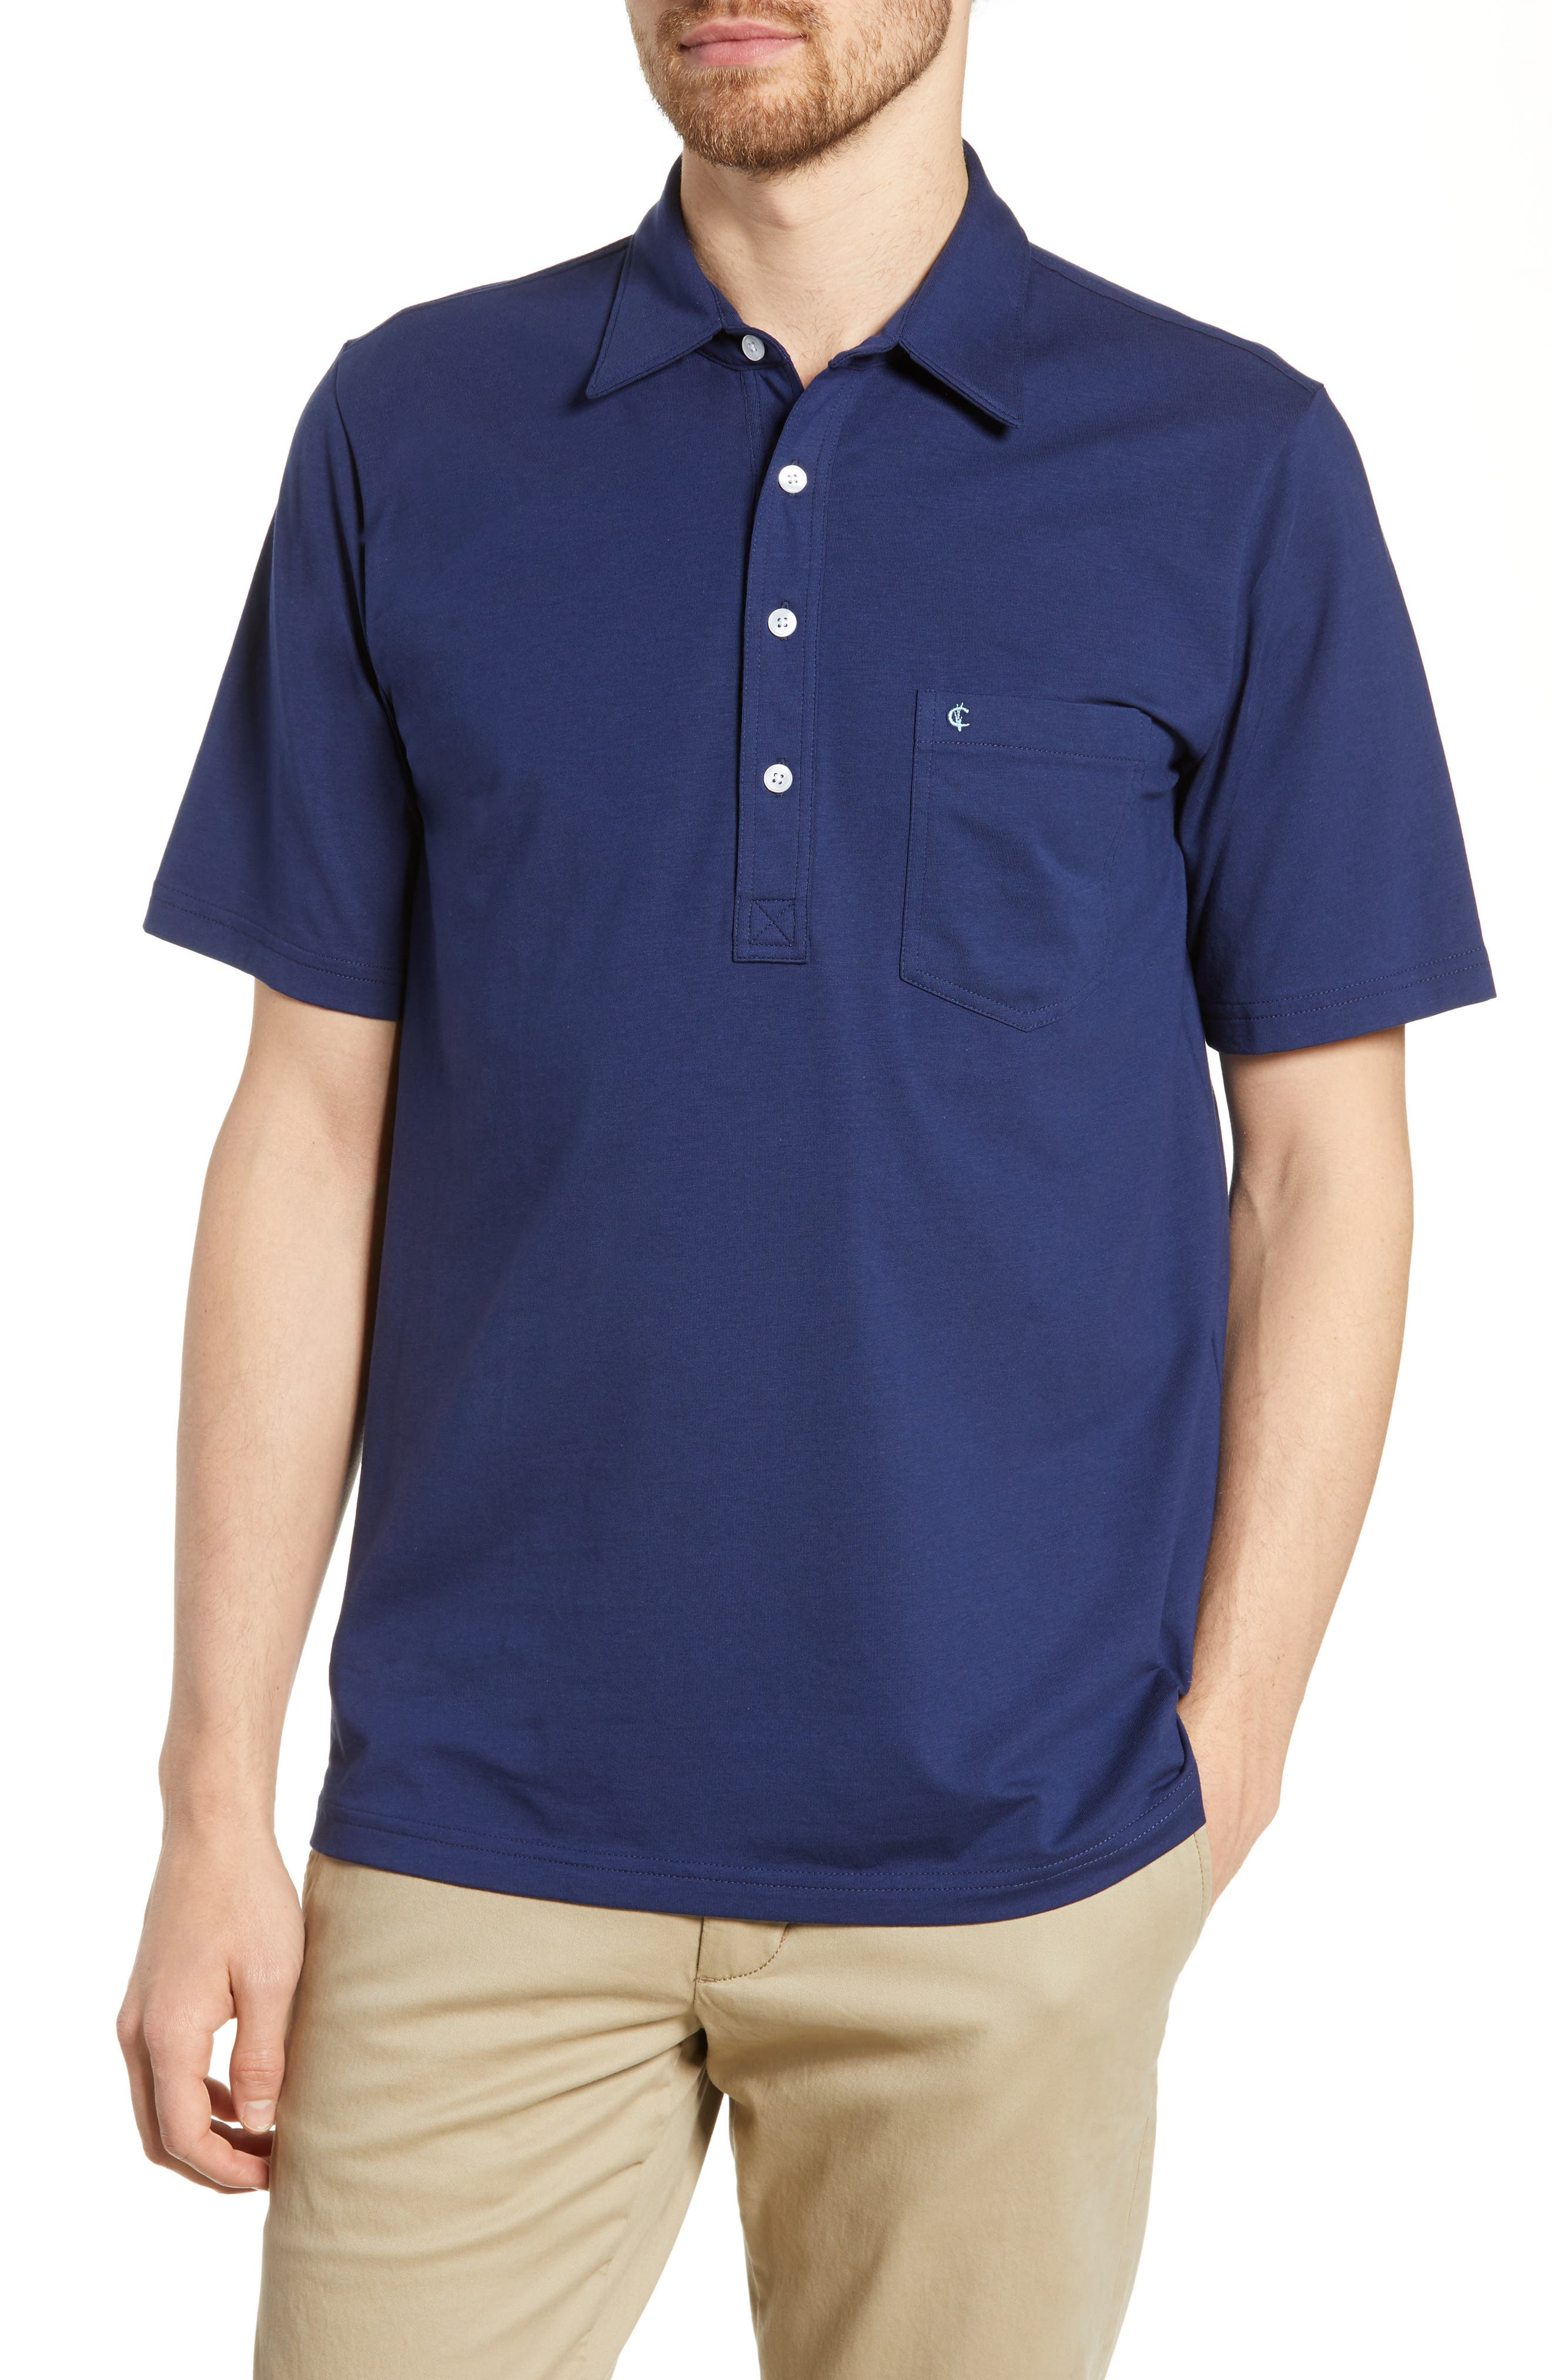 CRIQUET, Players Stretch Jersey Polo, Main thumbnail 1, color, NAVY